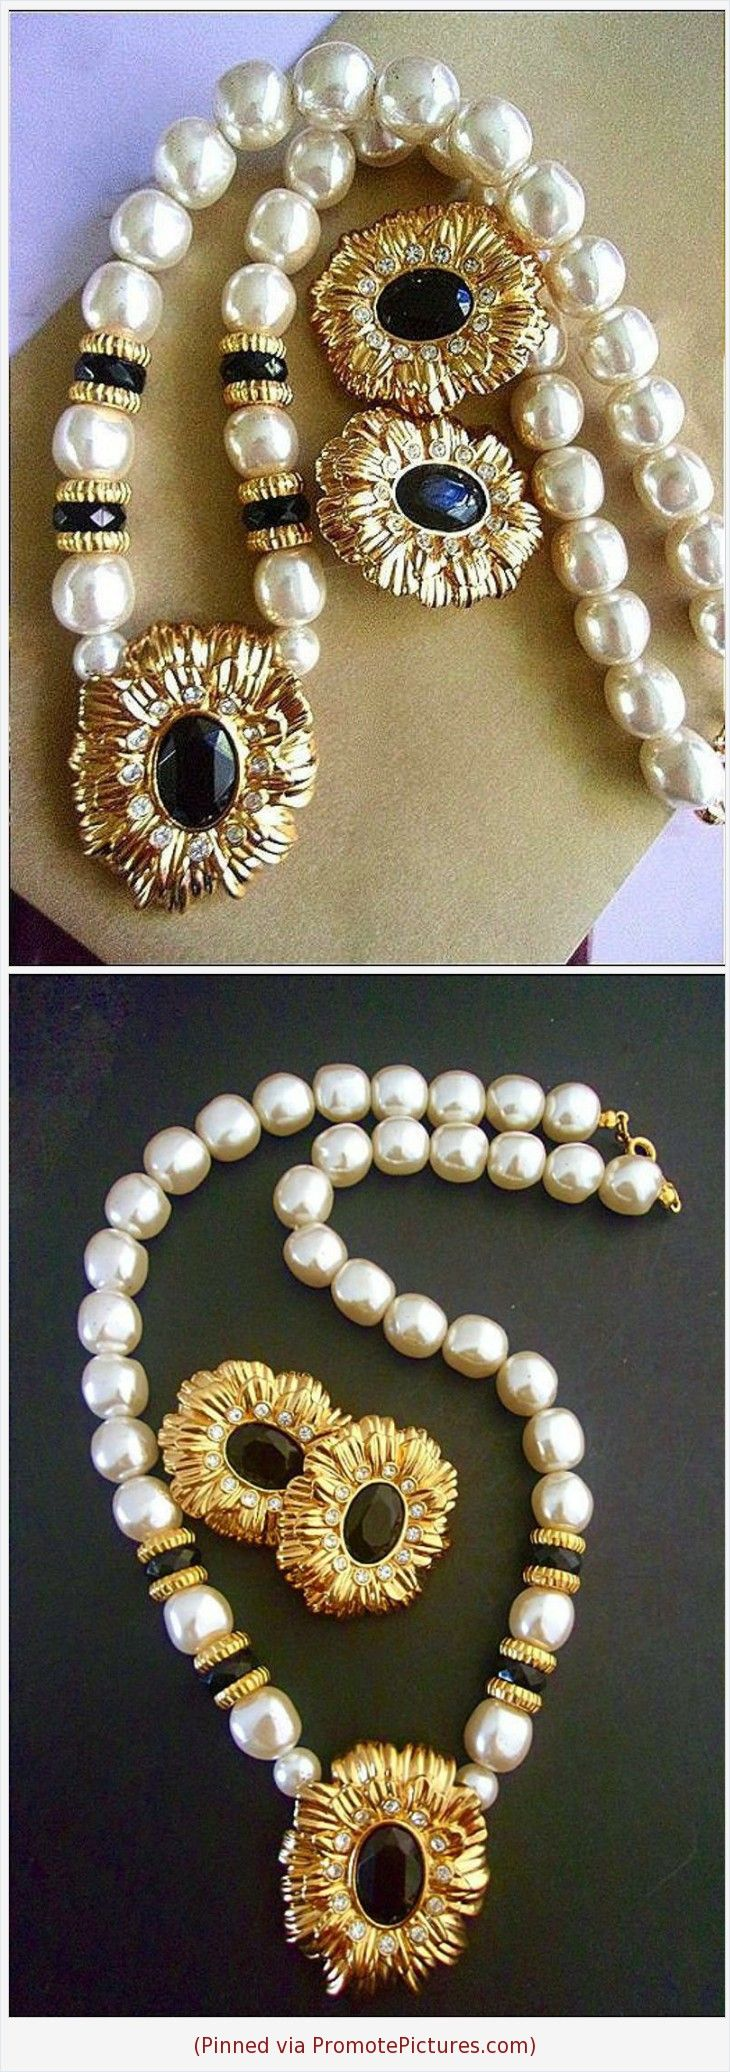 Gold Tone Chain with Pearl and Rhinestone Rondells Vintage Jewelry Designer